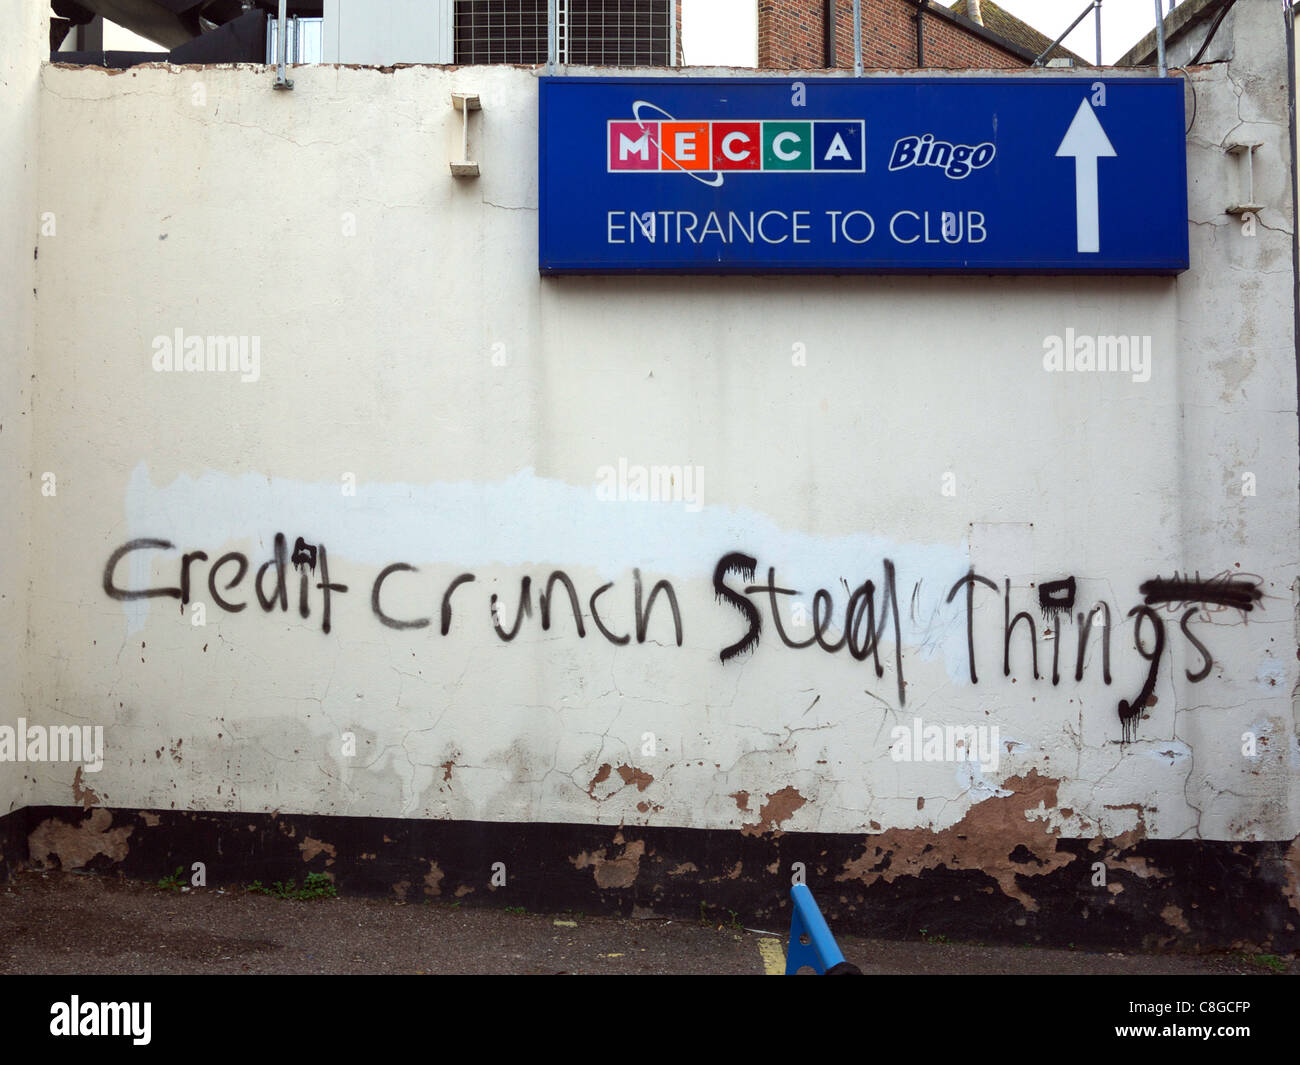 Credit Crunch Steal Things - Stock Image